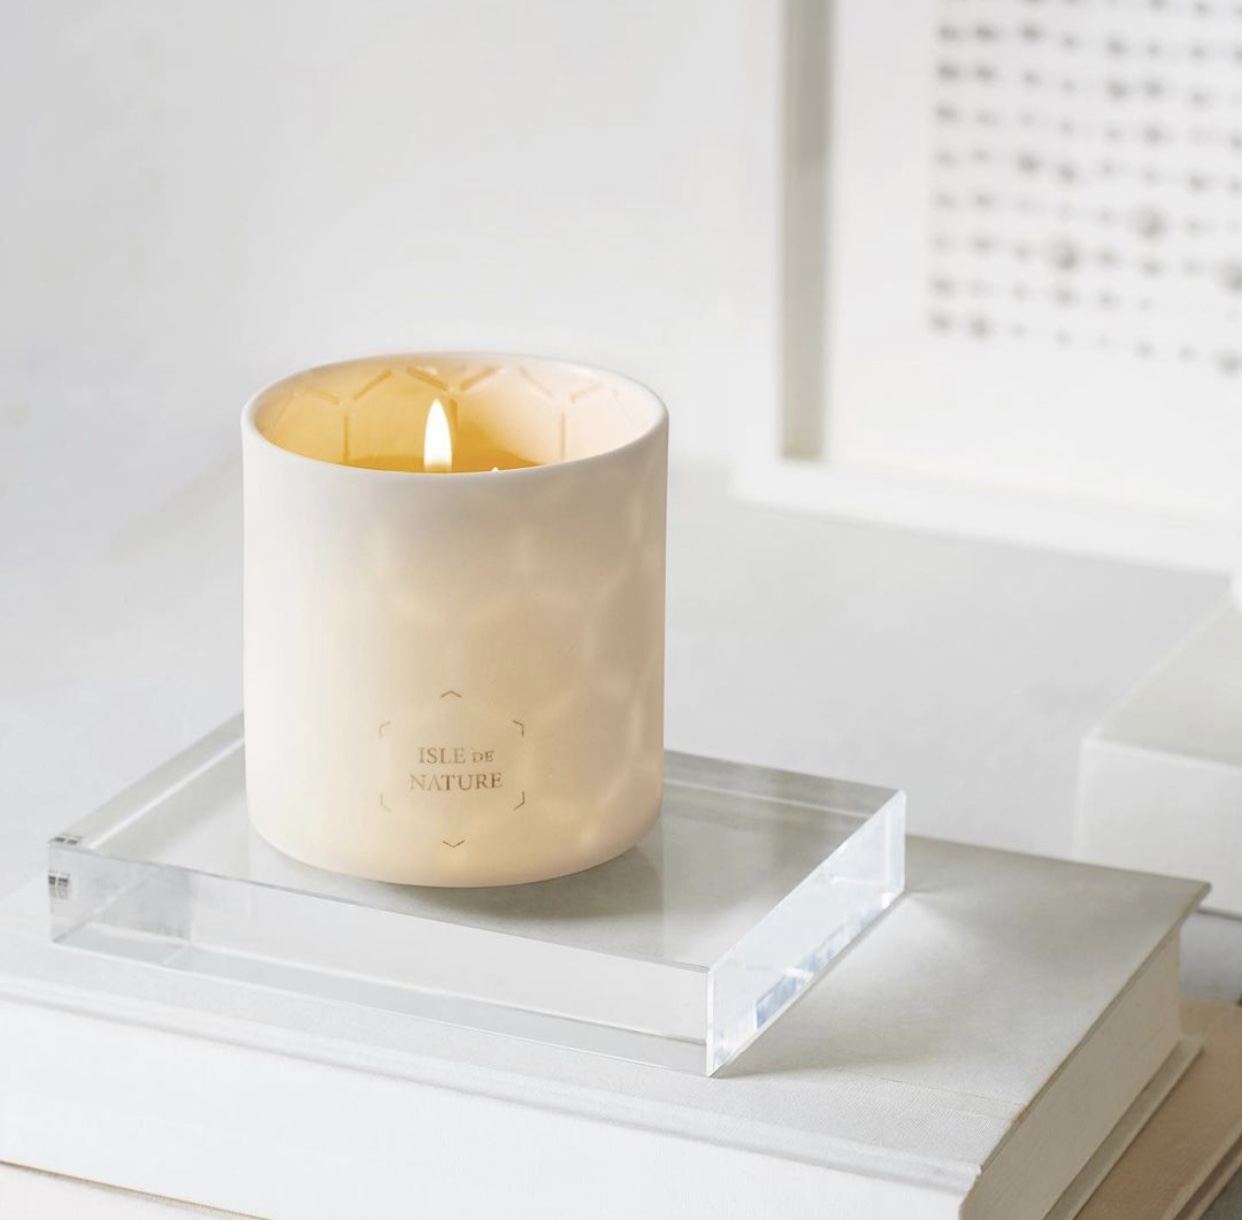 Editor Claire McCormack Picks Isle de Nature Beeswax Candle